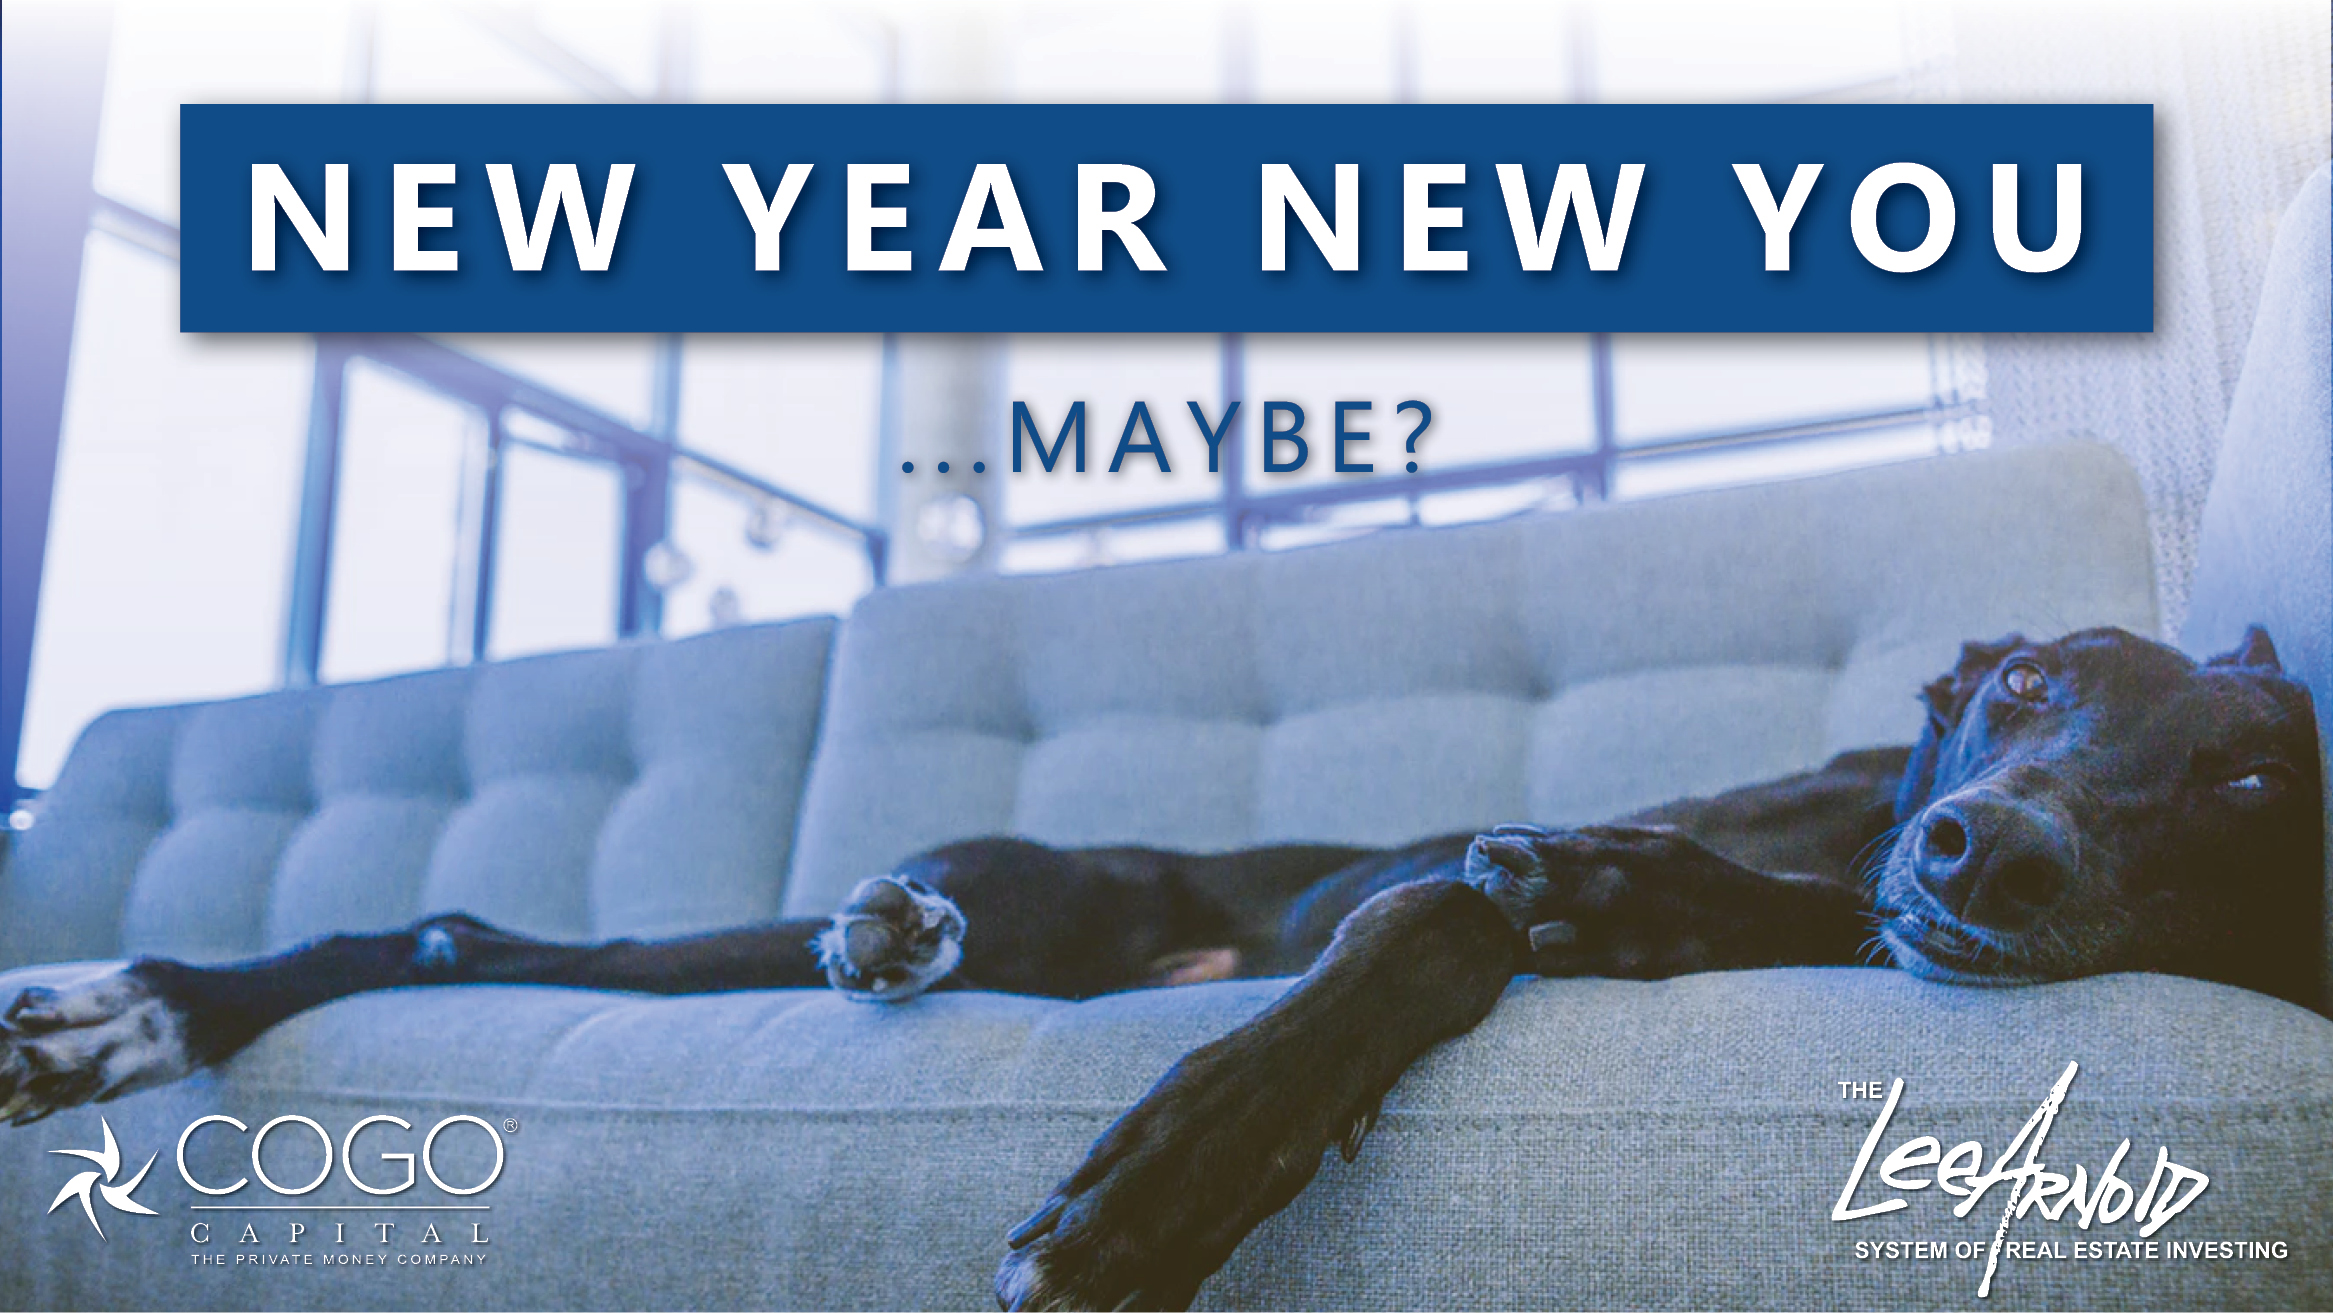 NEW YEAR NEW YOU…Maybe?